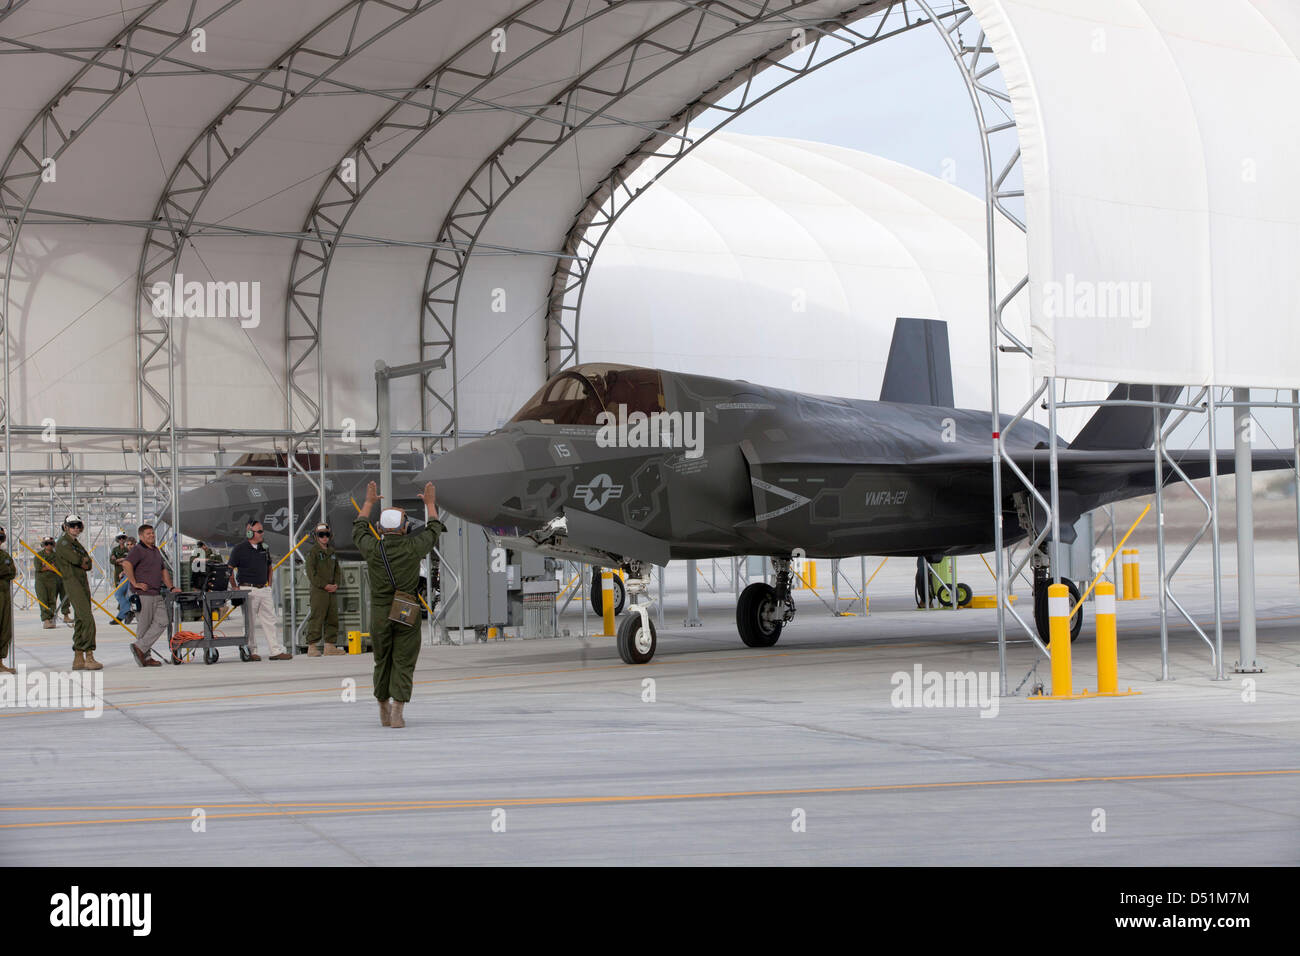 A US Marine Corps F-35B Lightning II stealth fighter aircraft is directed out from a hanger as it makes the first - Stock Image